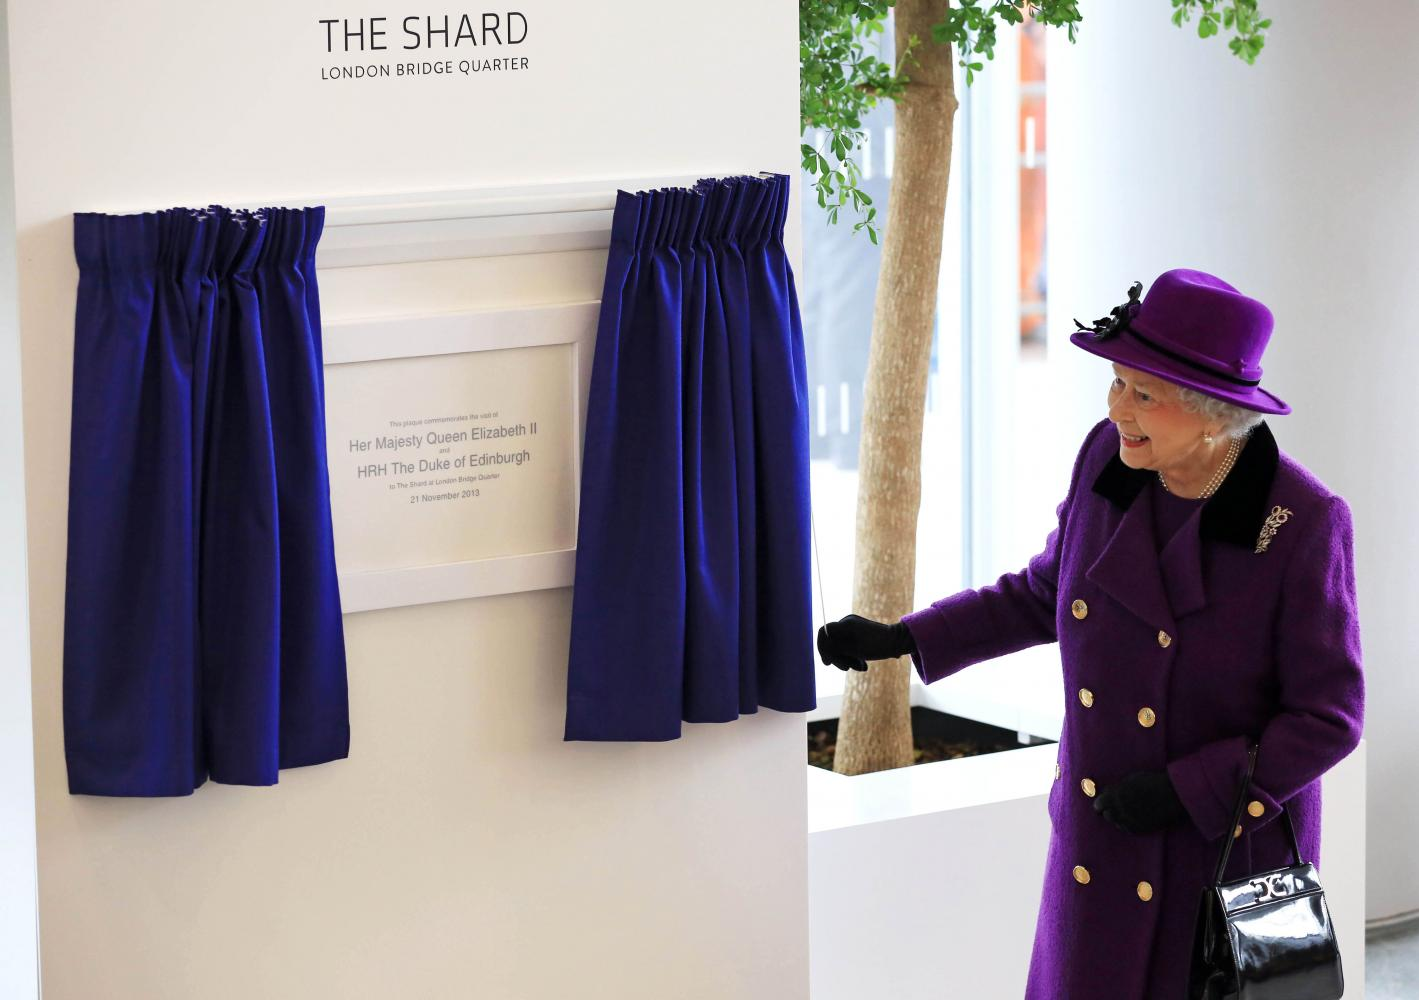 The Queen visits The Shard, London